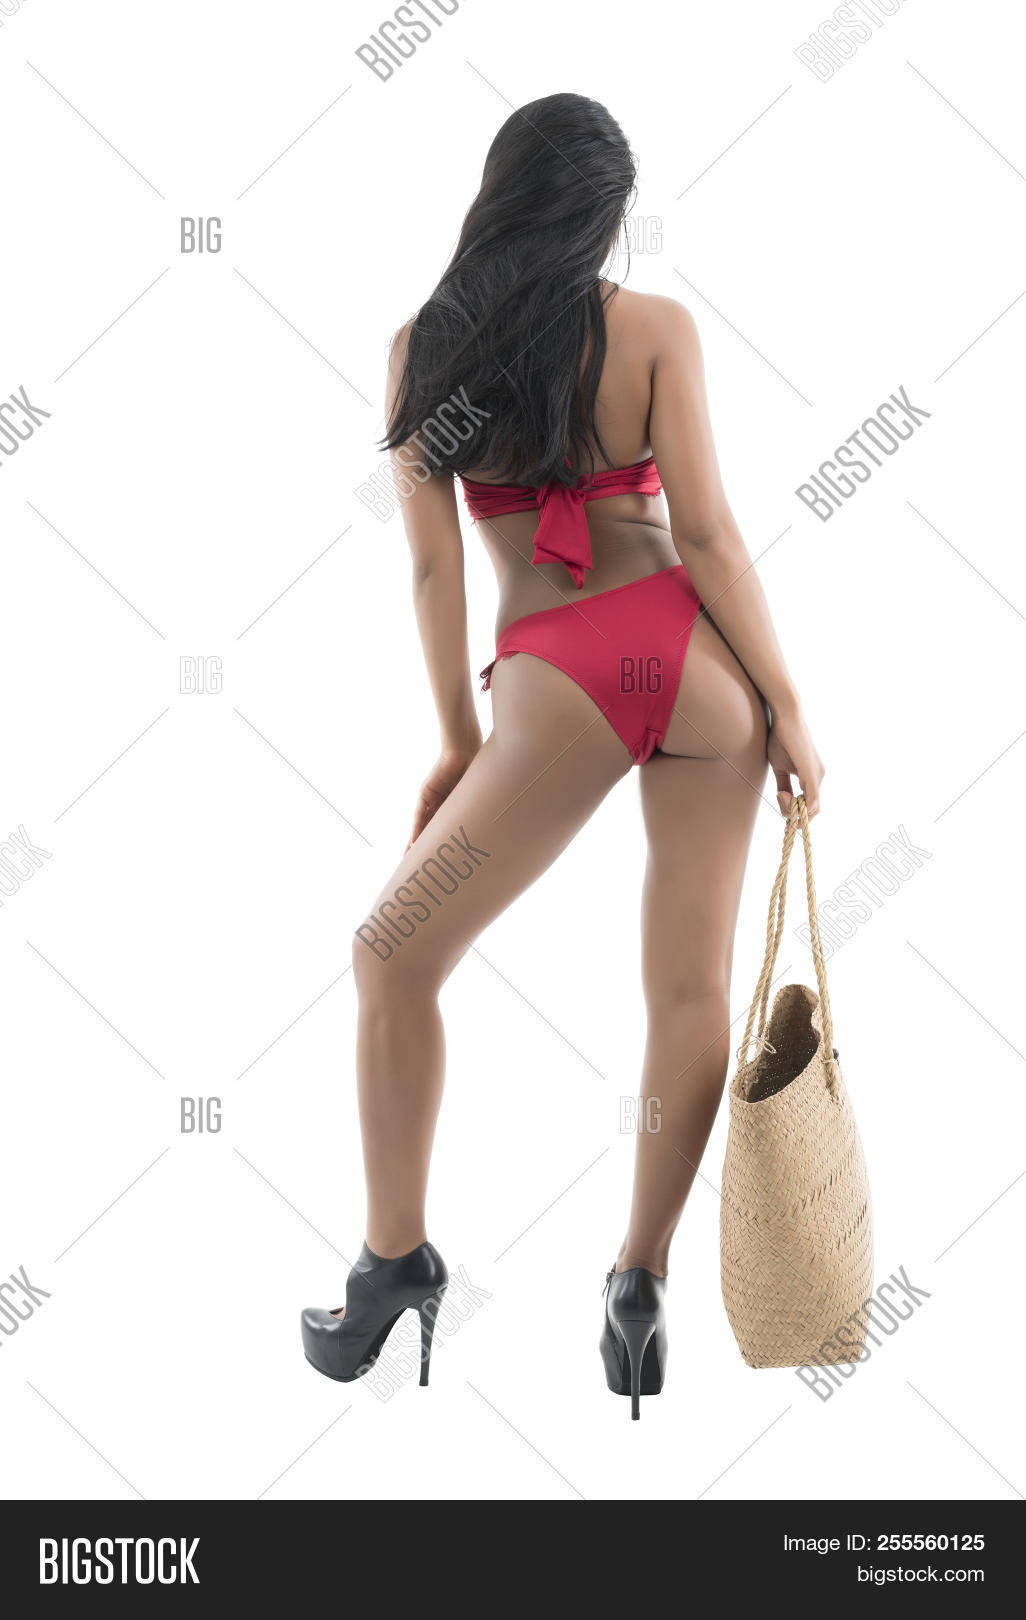 38093fecf2 Beautiful Sexy Young Asian Woman In Red Bikini And Black High-heeled Shoes  Holding Woven. Create a lightbox